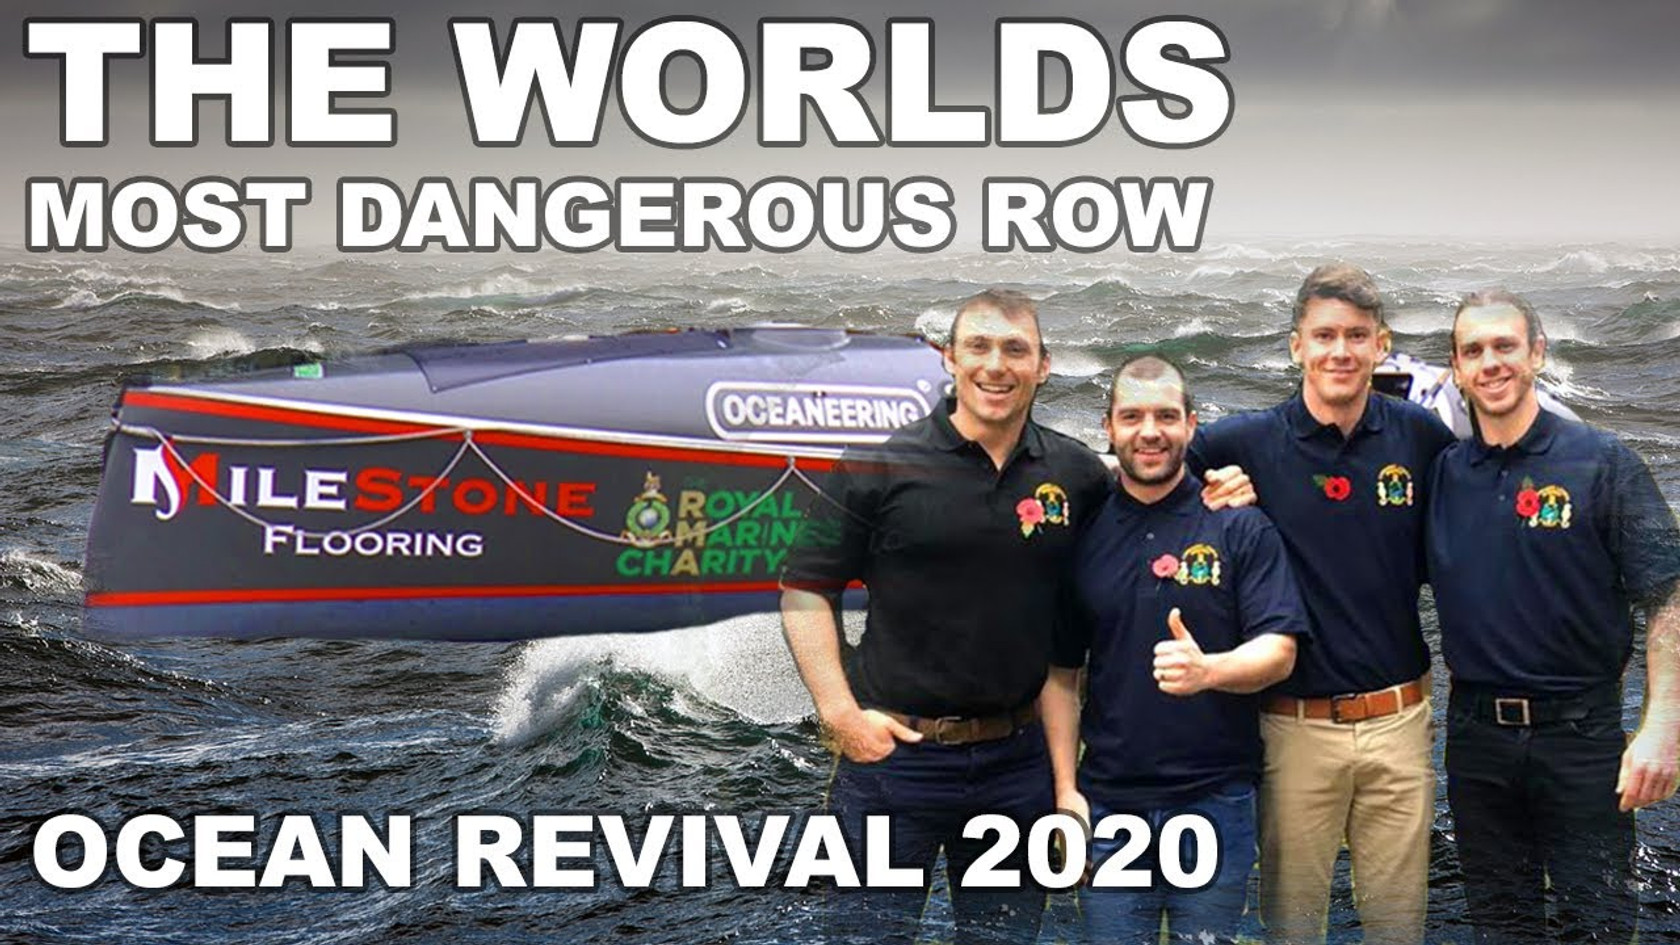 The Worlds Most Dangerous Row